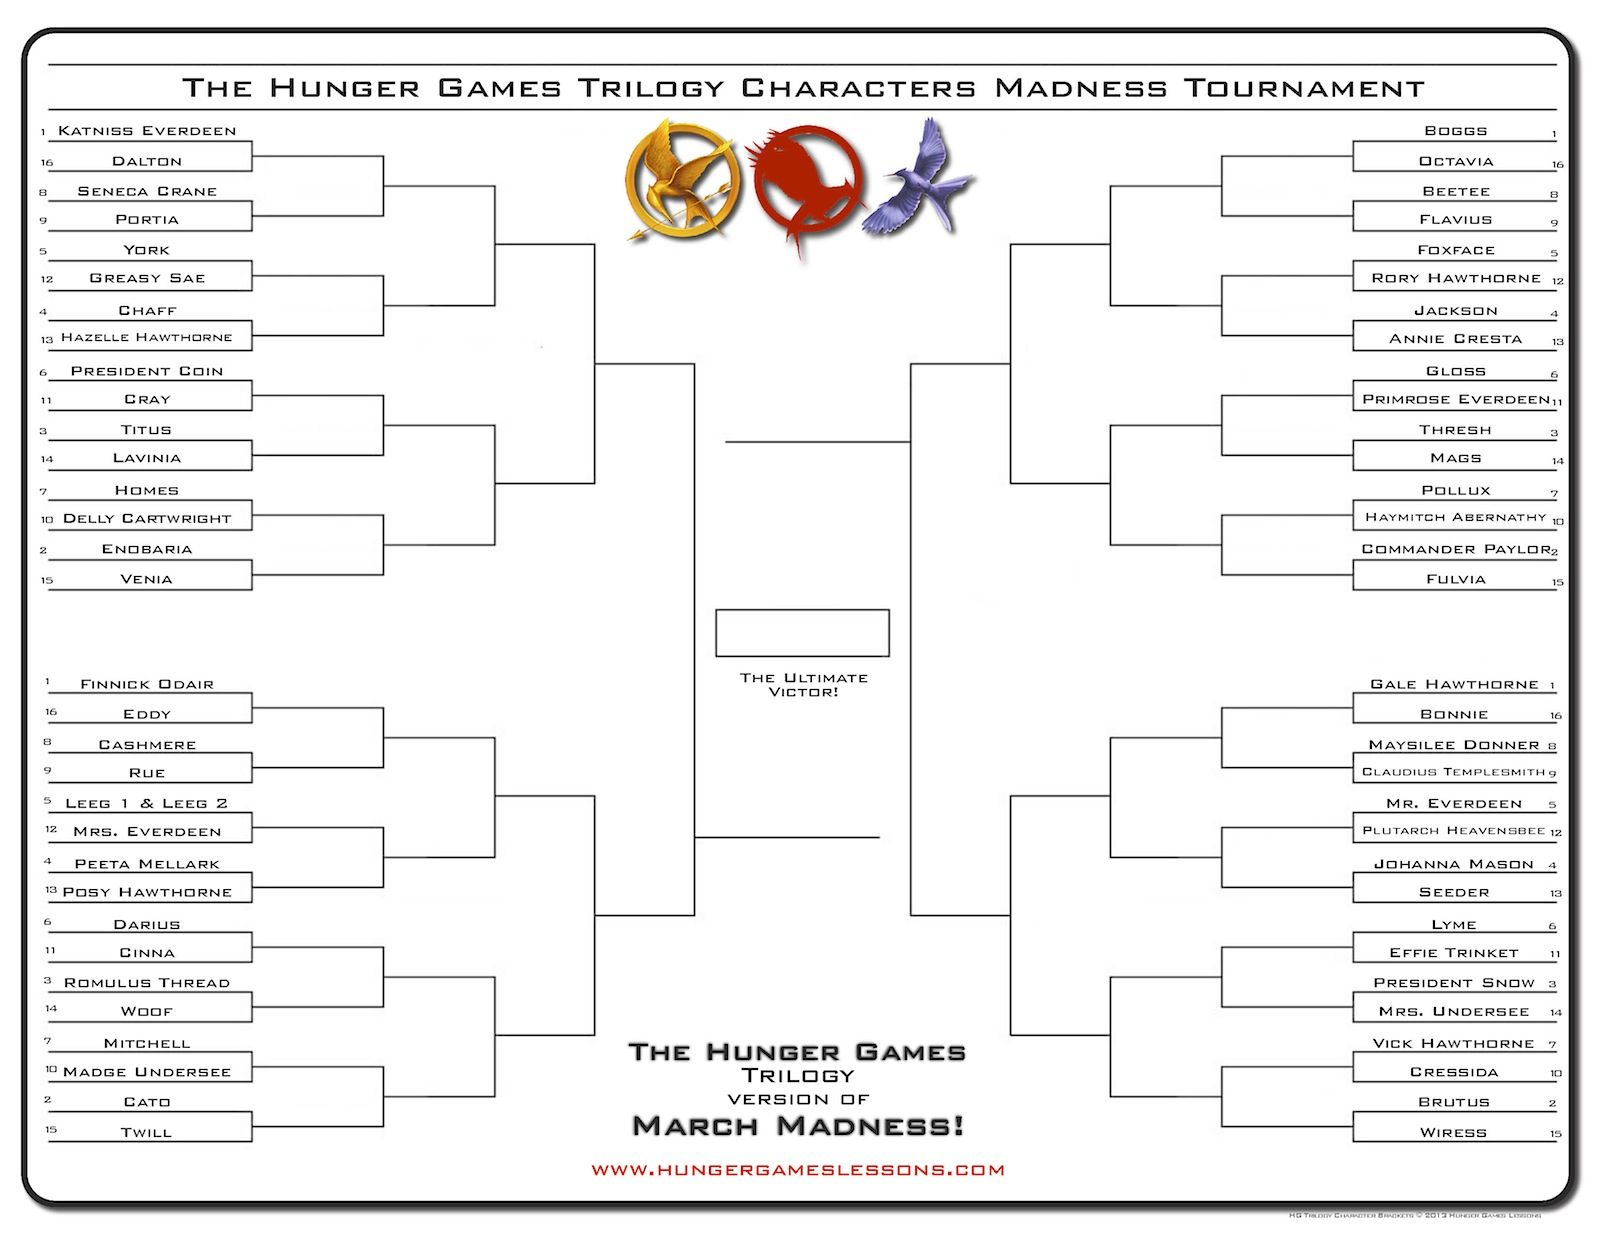 the hunger games trilogy tour nt bracket who would you pick to the hunger games trilogy tour nt bracket who would you pick to win